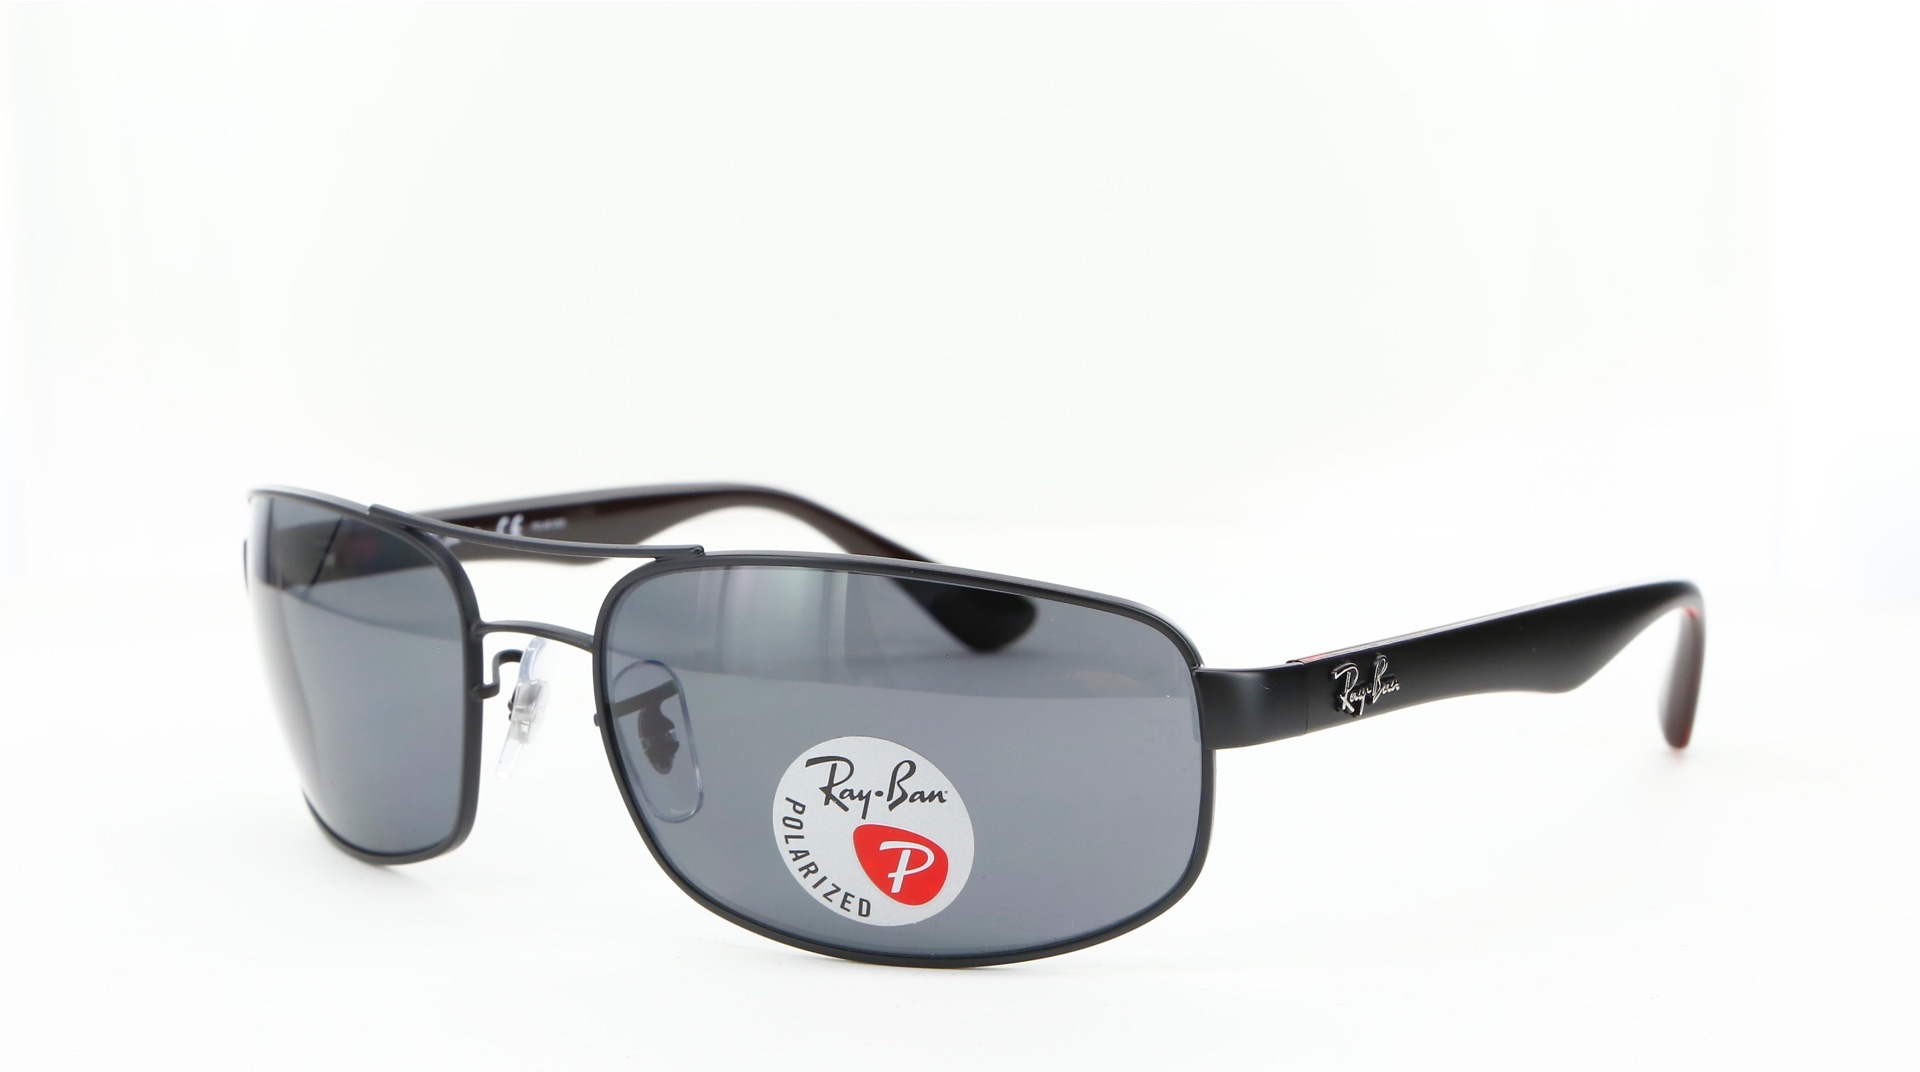 Ray-Ban - ref: 74754